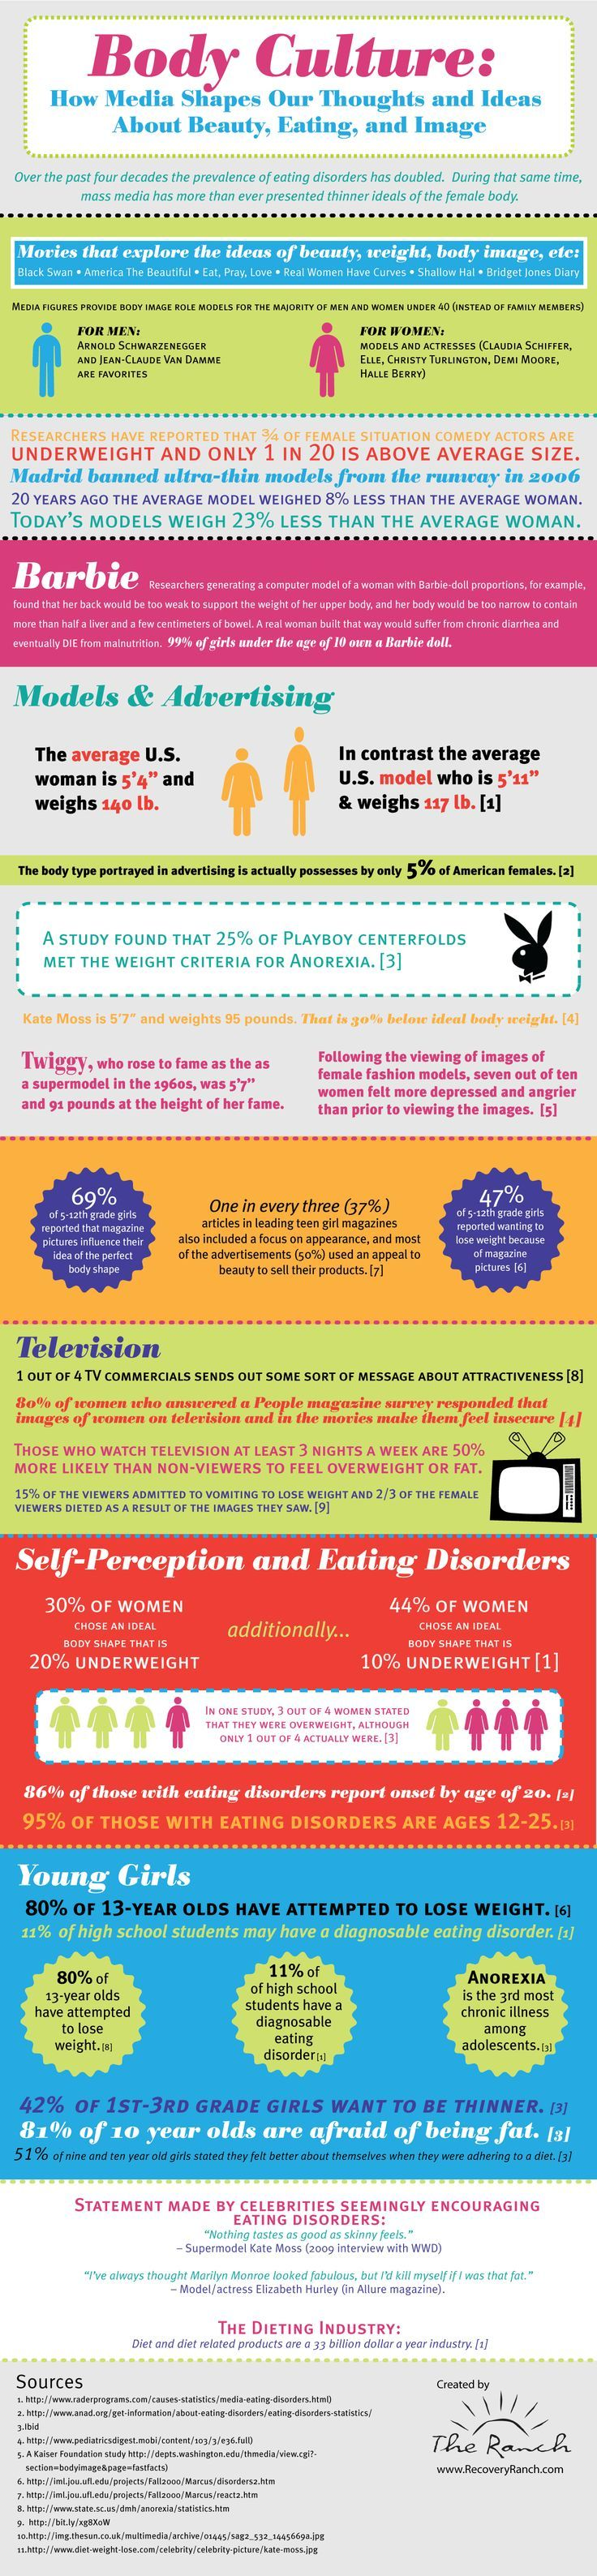 how do the media shape american Learn about the ways tv has changed american and how we see ourselveshere are 10 ways tv has shaped american there's a healthier way to consume your media.